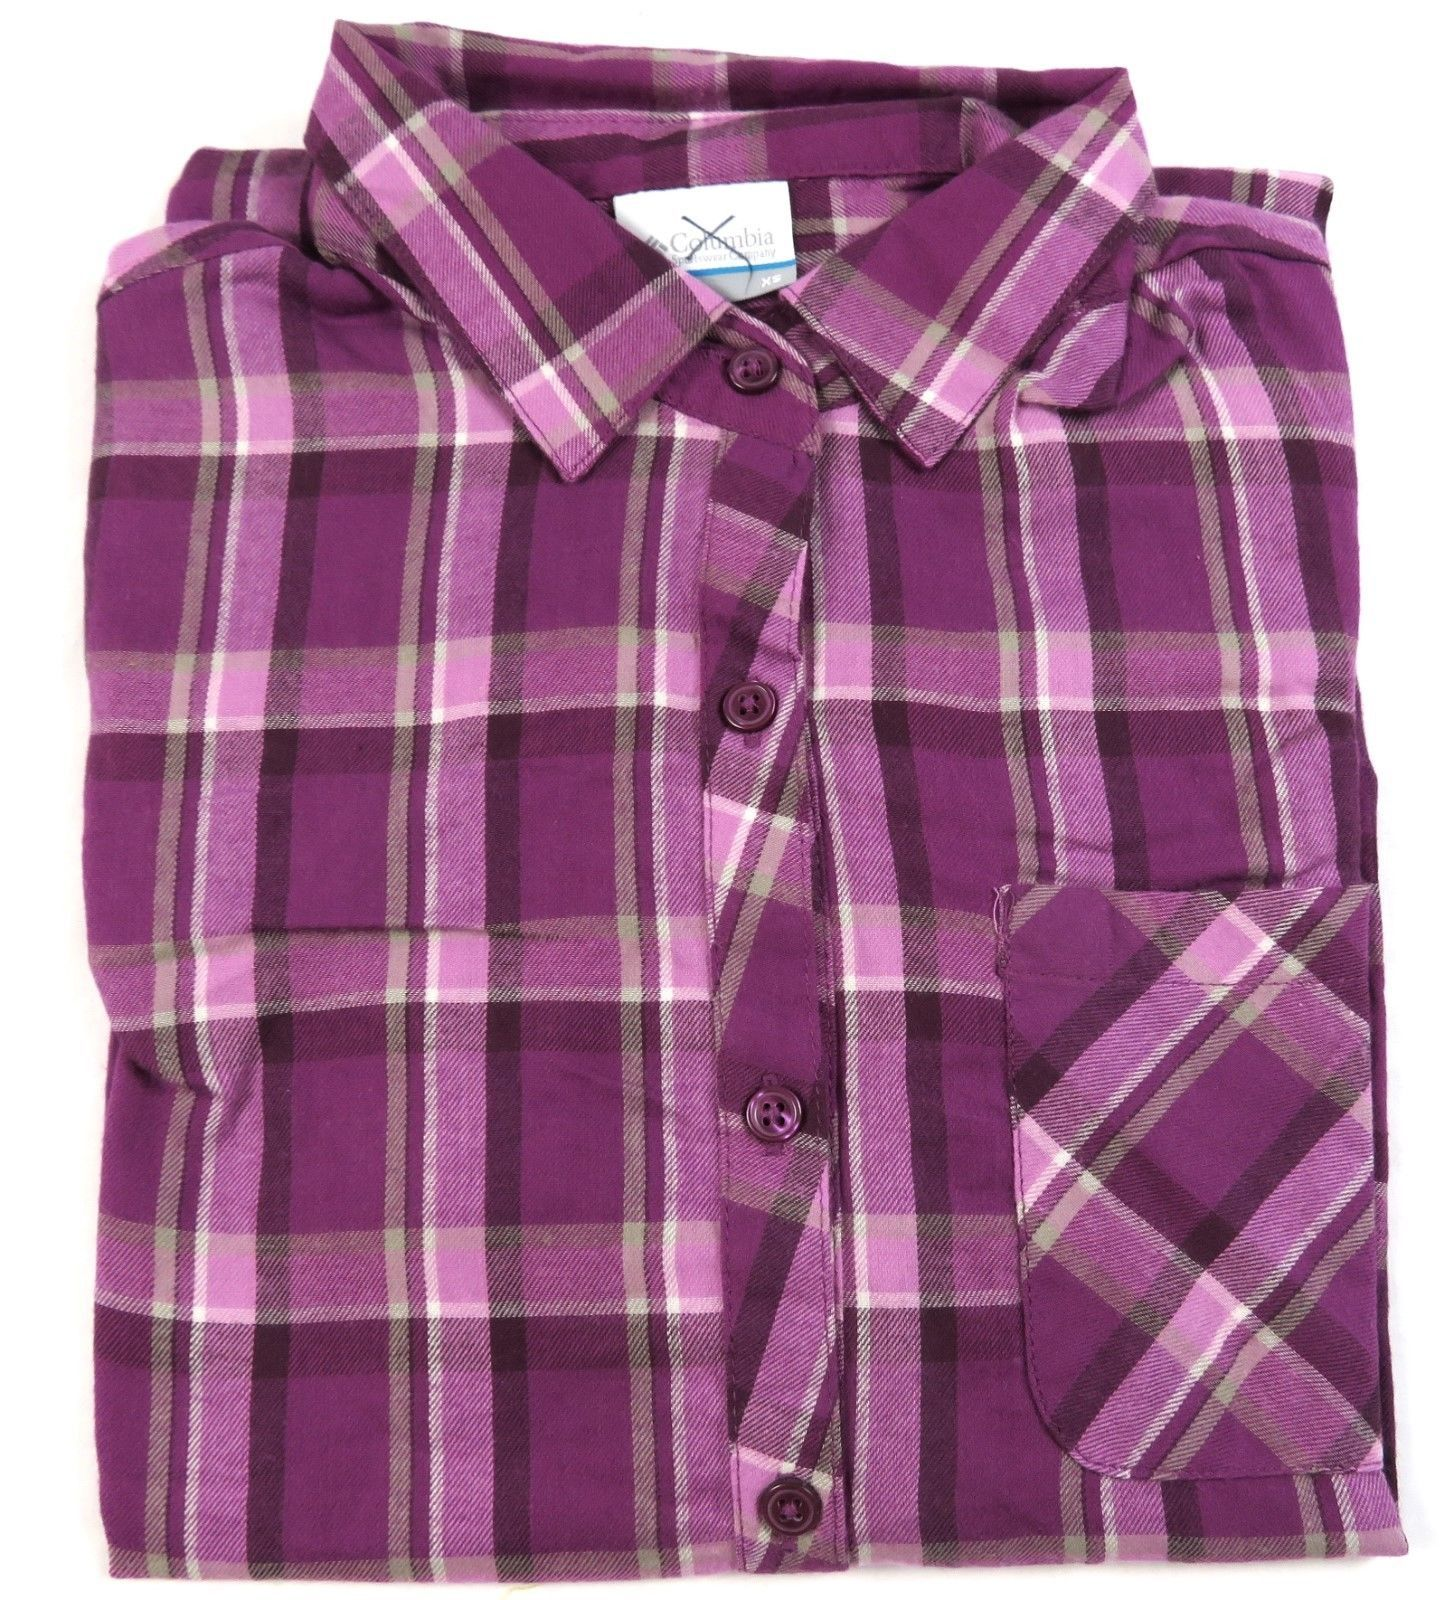 X-Small Columbia Women's Shirt Flannel Pullover Purple Dahlia Plaid